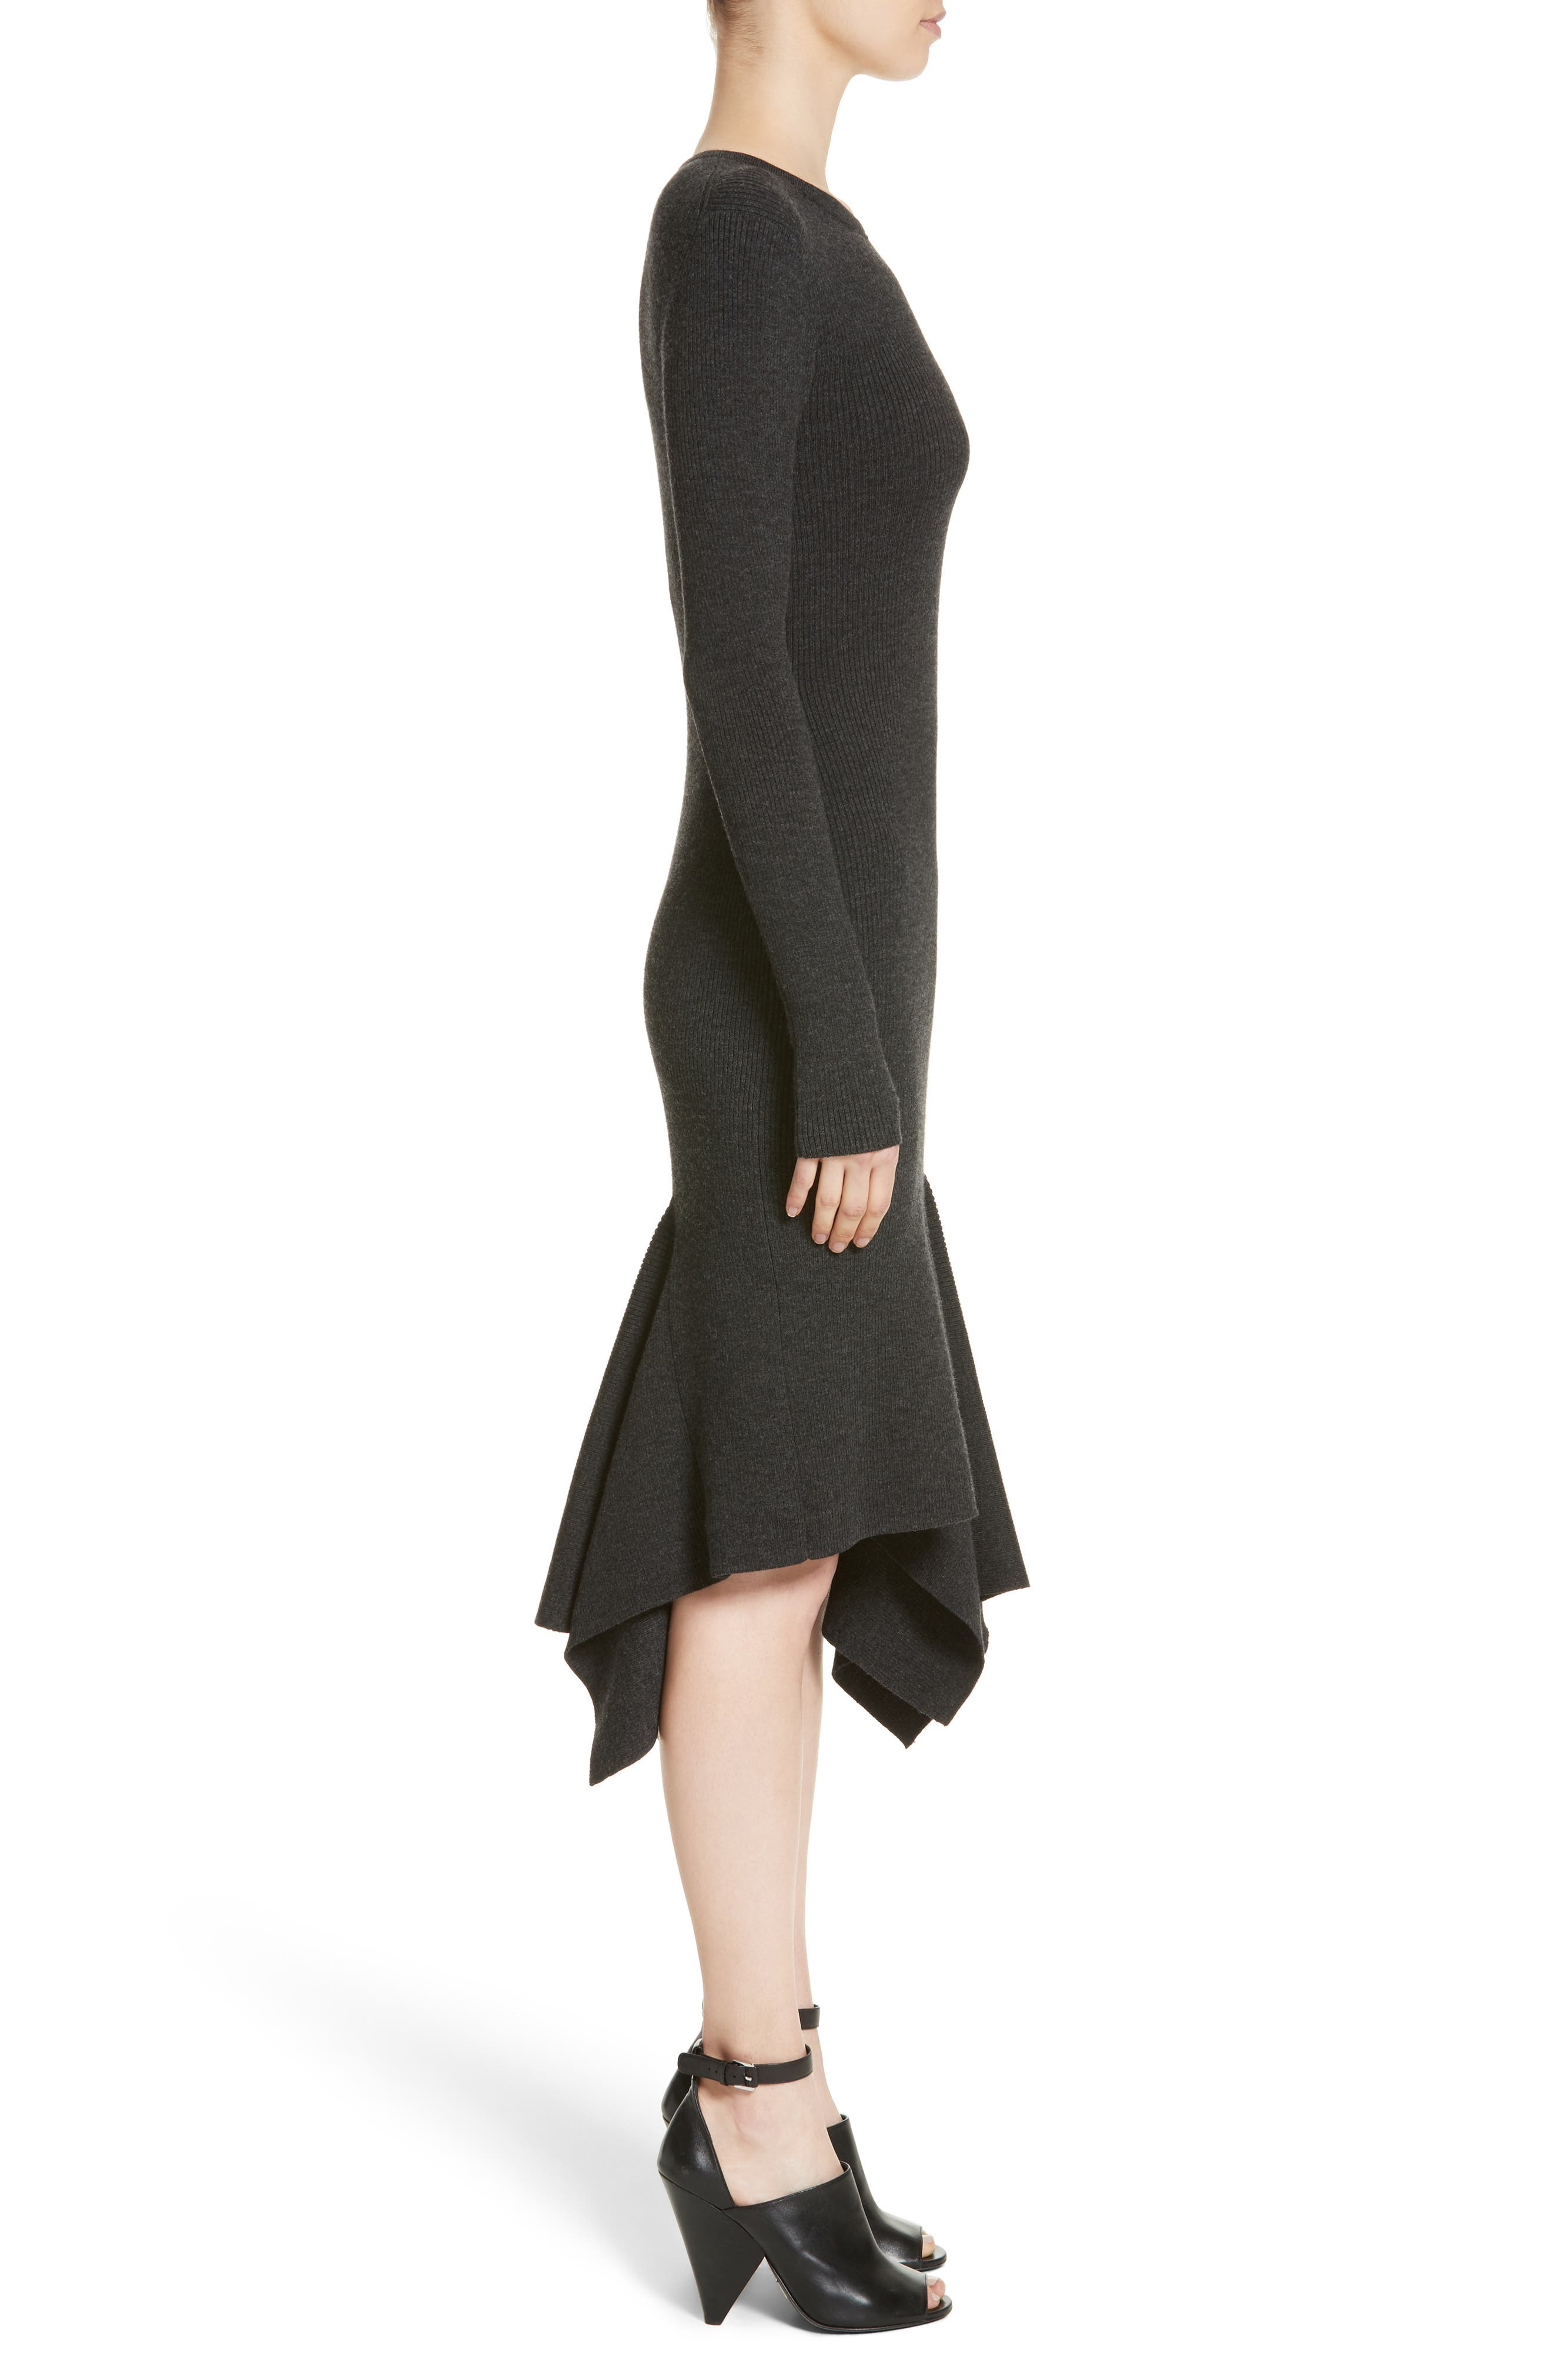 Alternate Image 3  - Michael Kors Merino Wool Blend Handkerchief Hem Dress